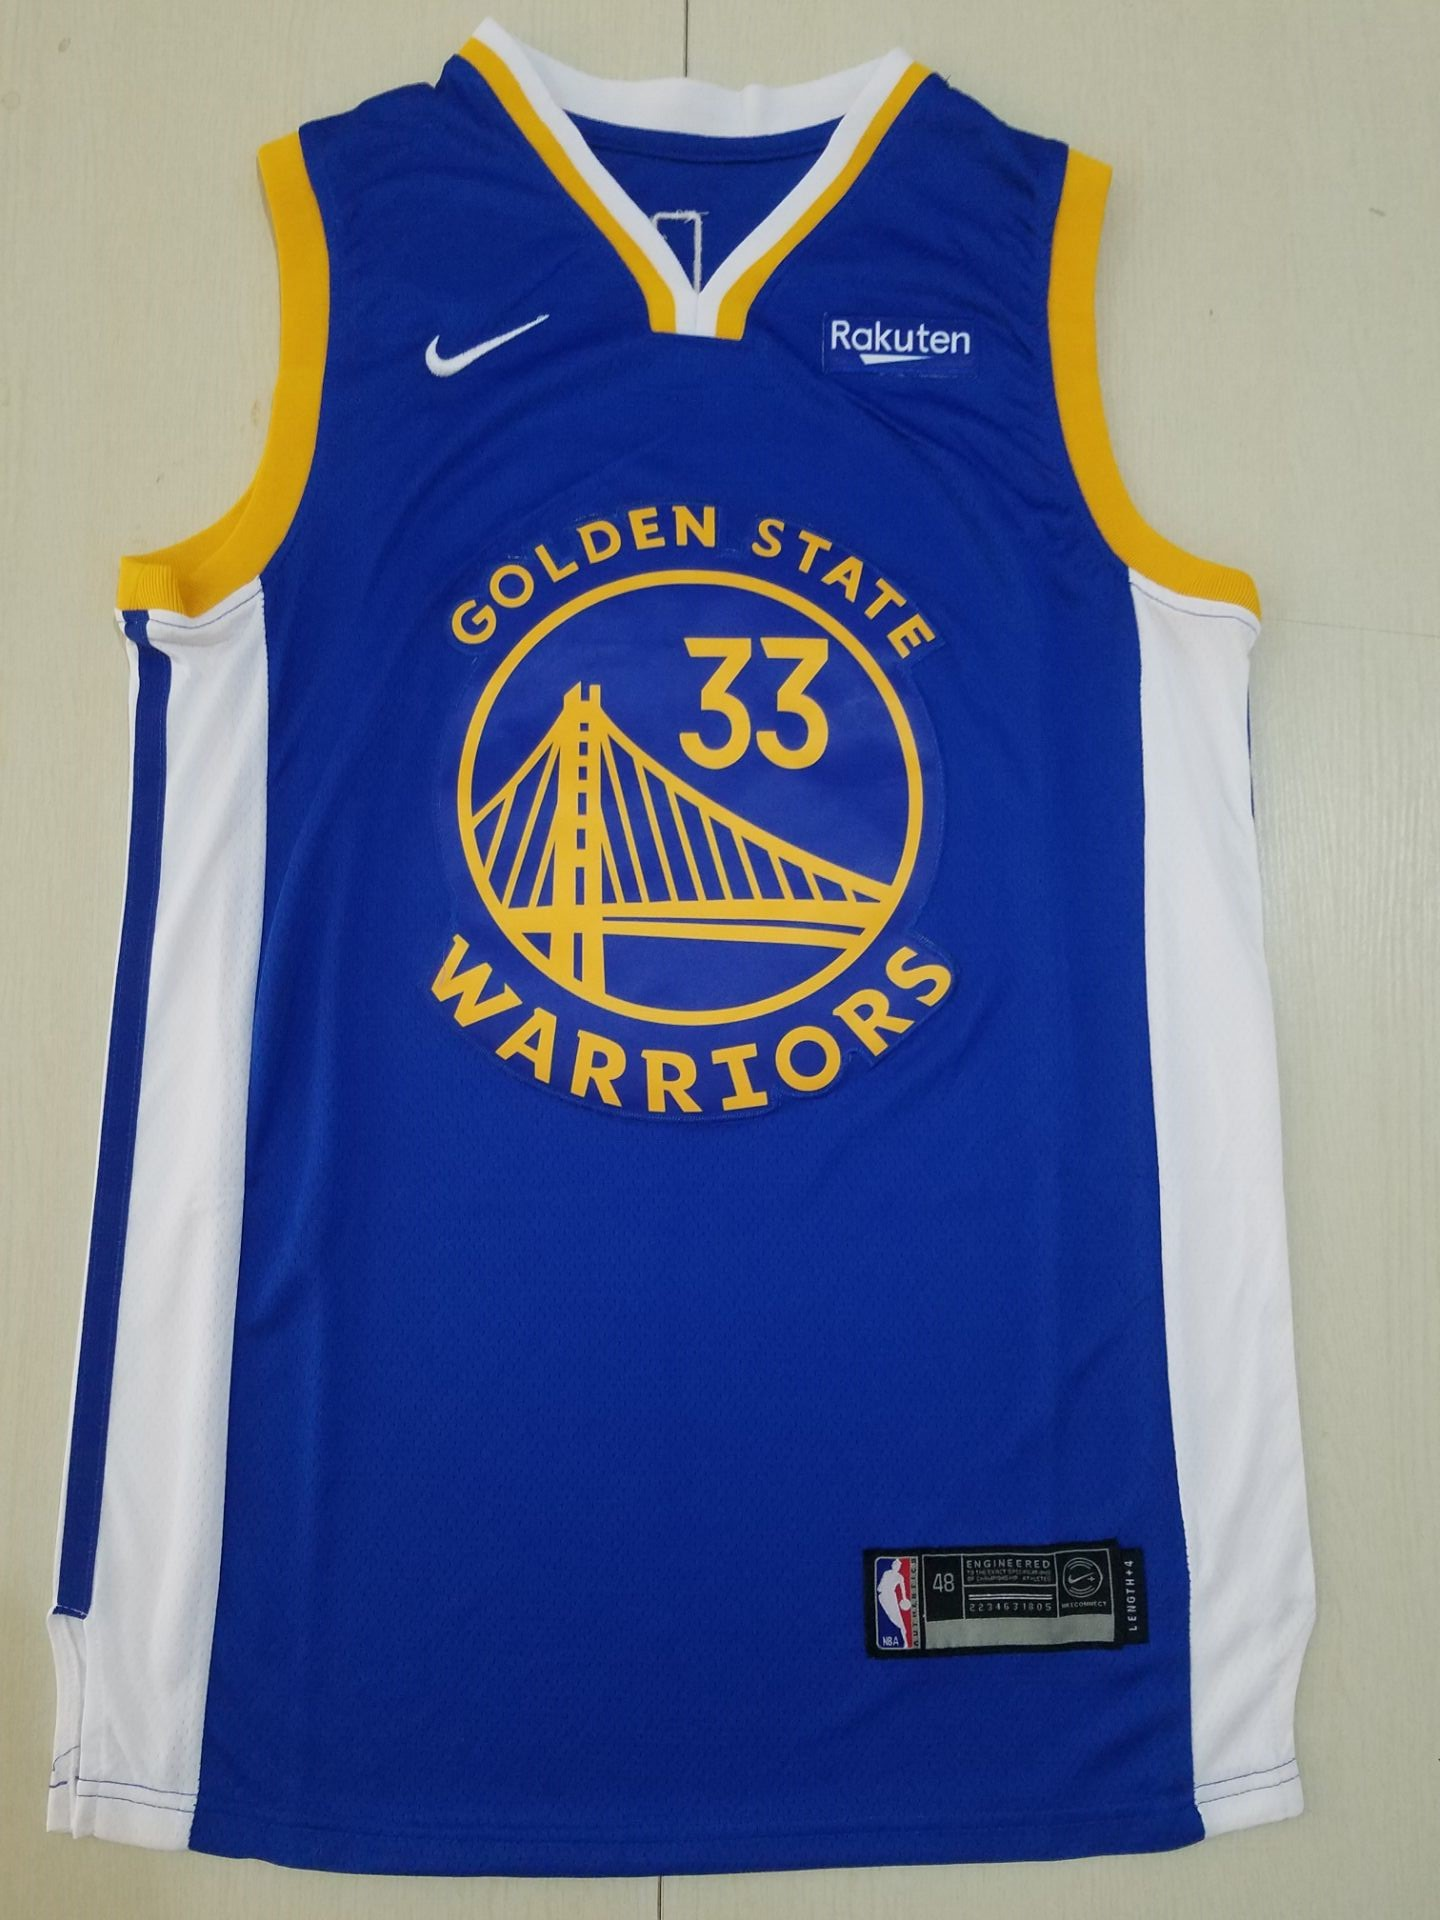 Wholesale Men Golden State Warriors 33 Wiseman limited blue new Nike NBA Jerseys